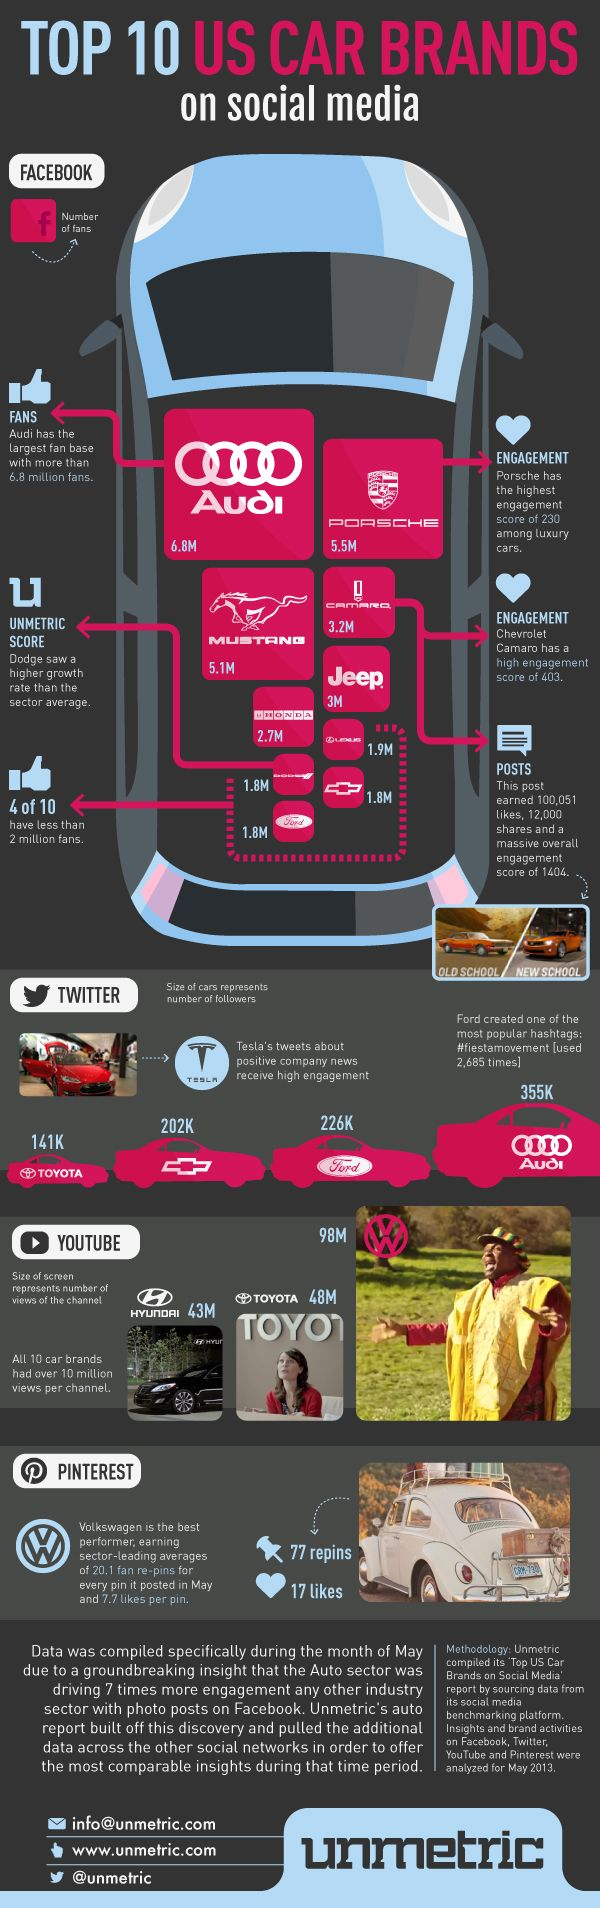 Unmetric covered the race that car brands have on social media find out the number of fans growth rate and engagement of the top brands on social media